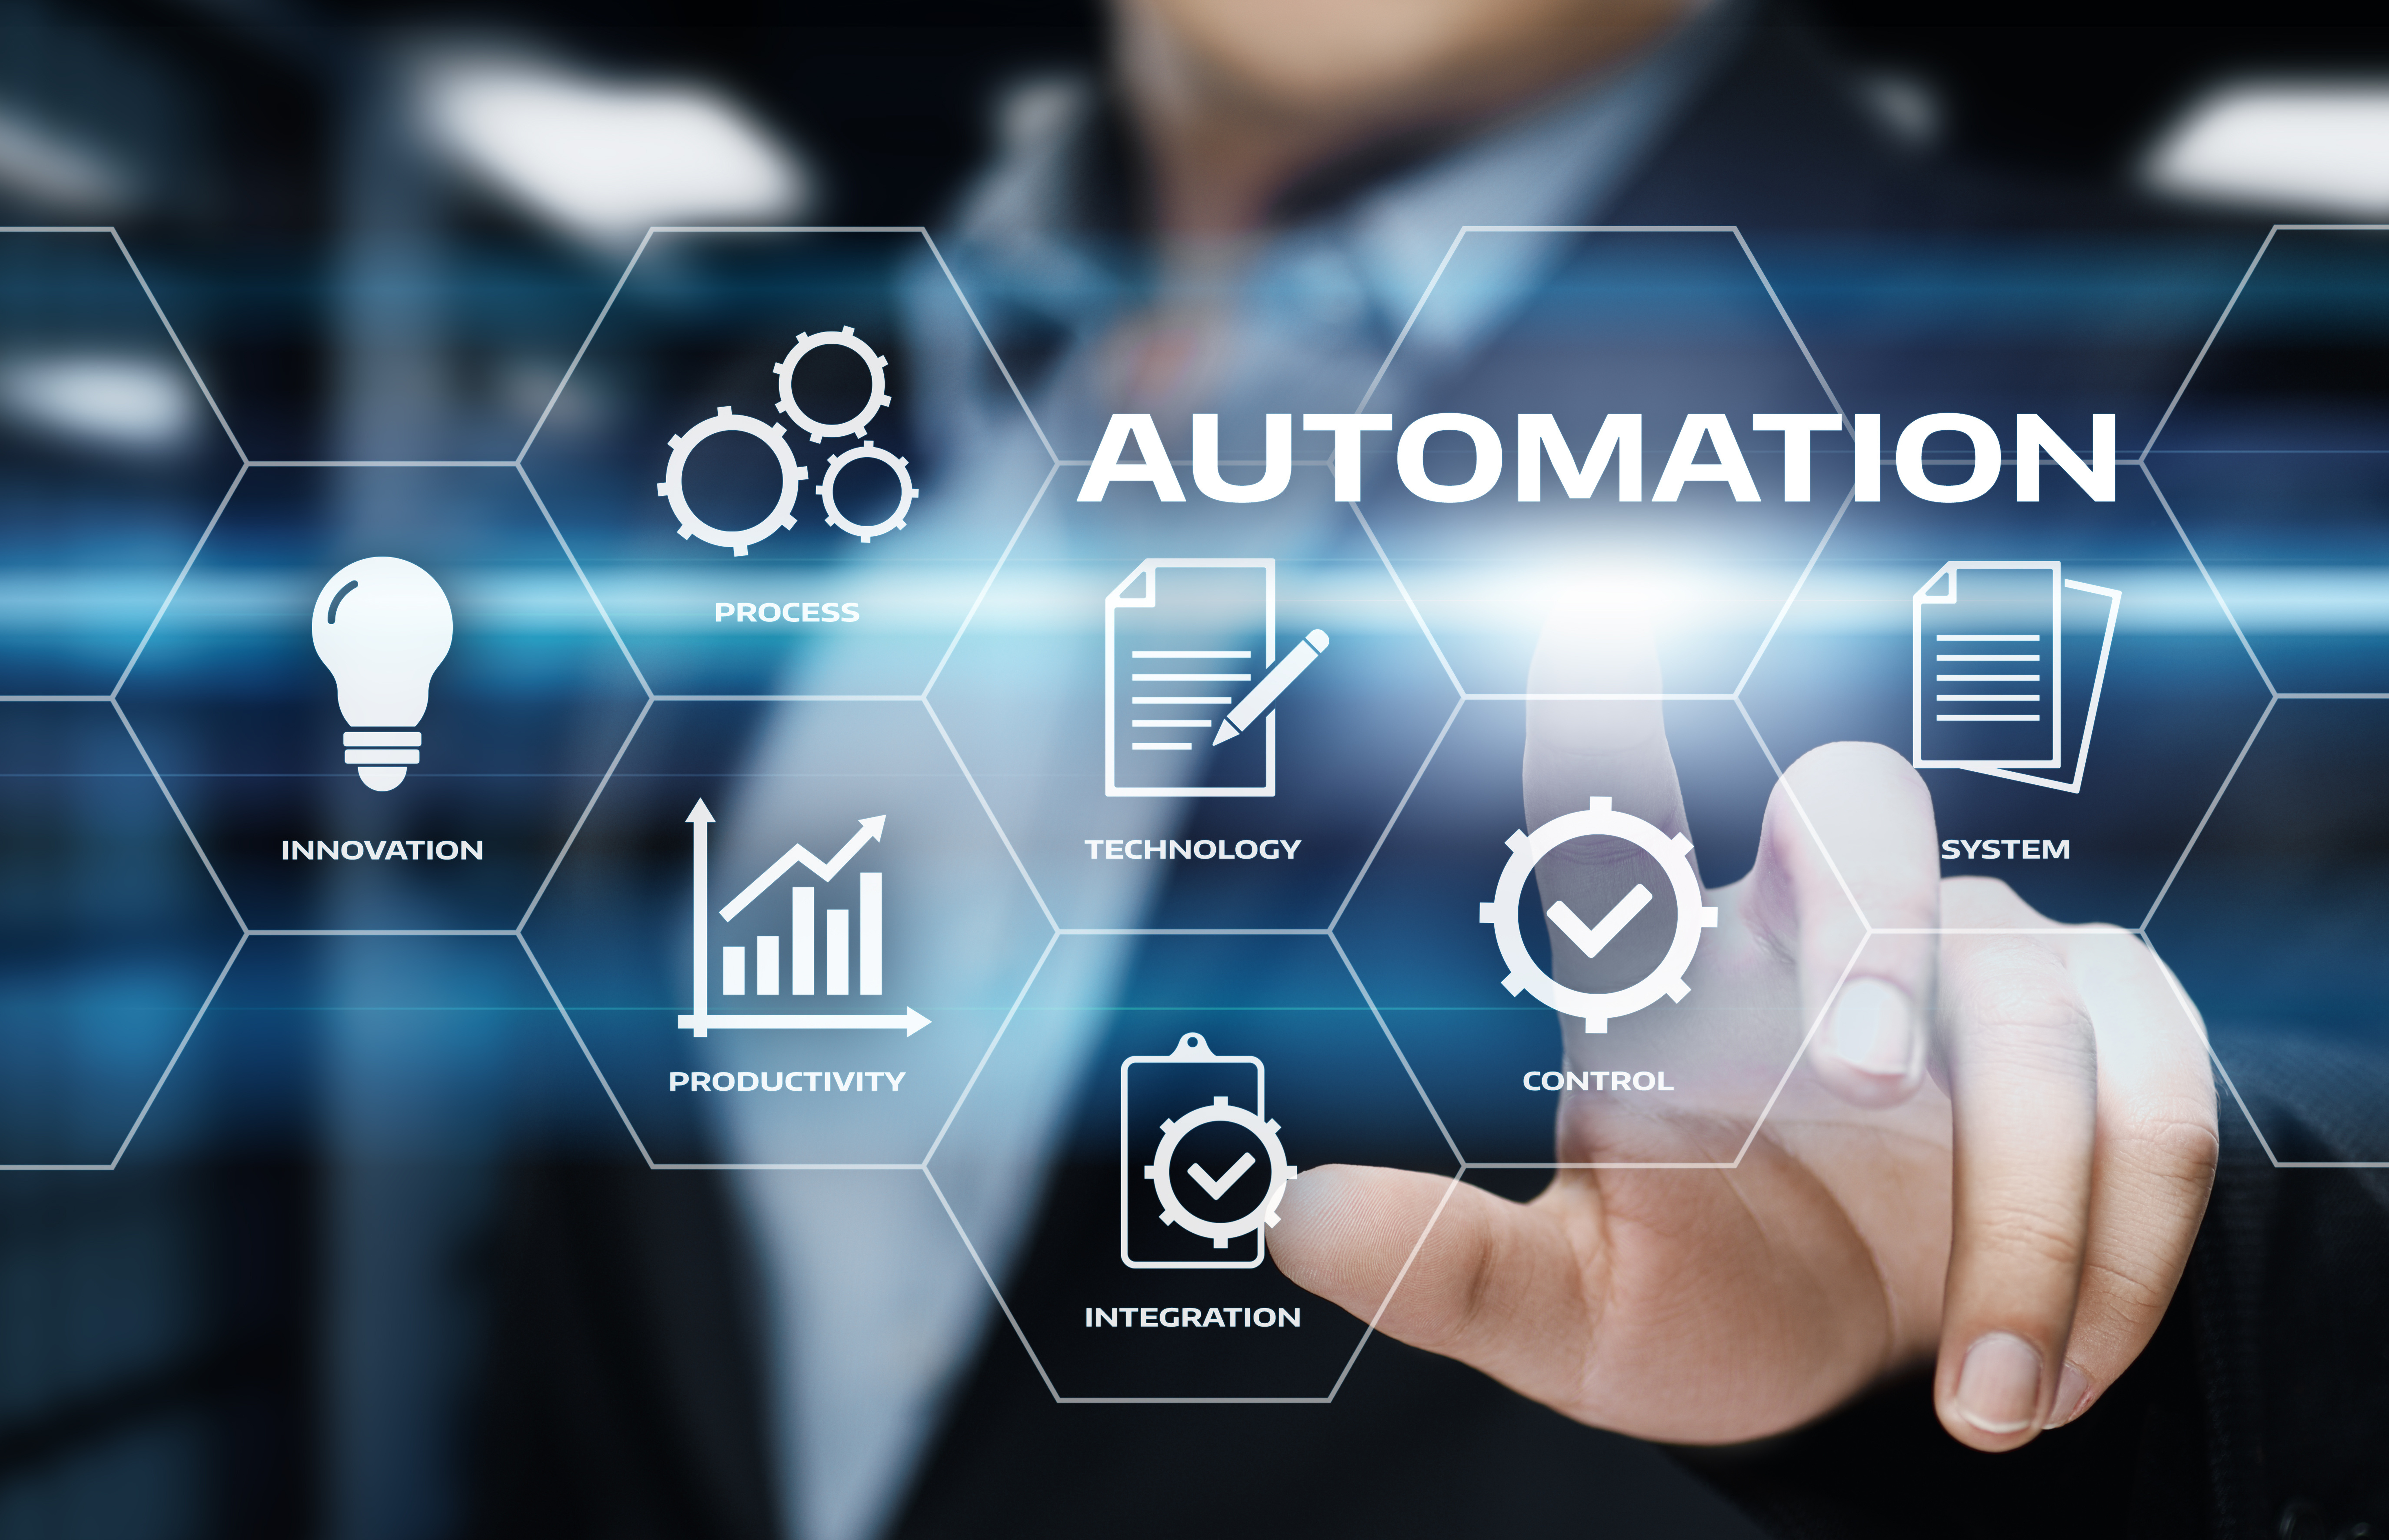 Automation stock image - man in suit uses touch screen